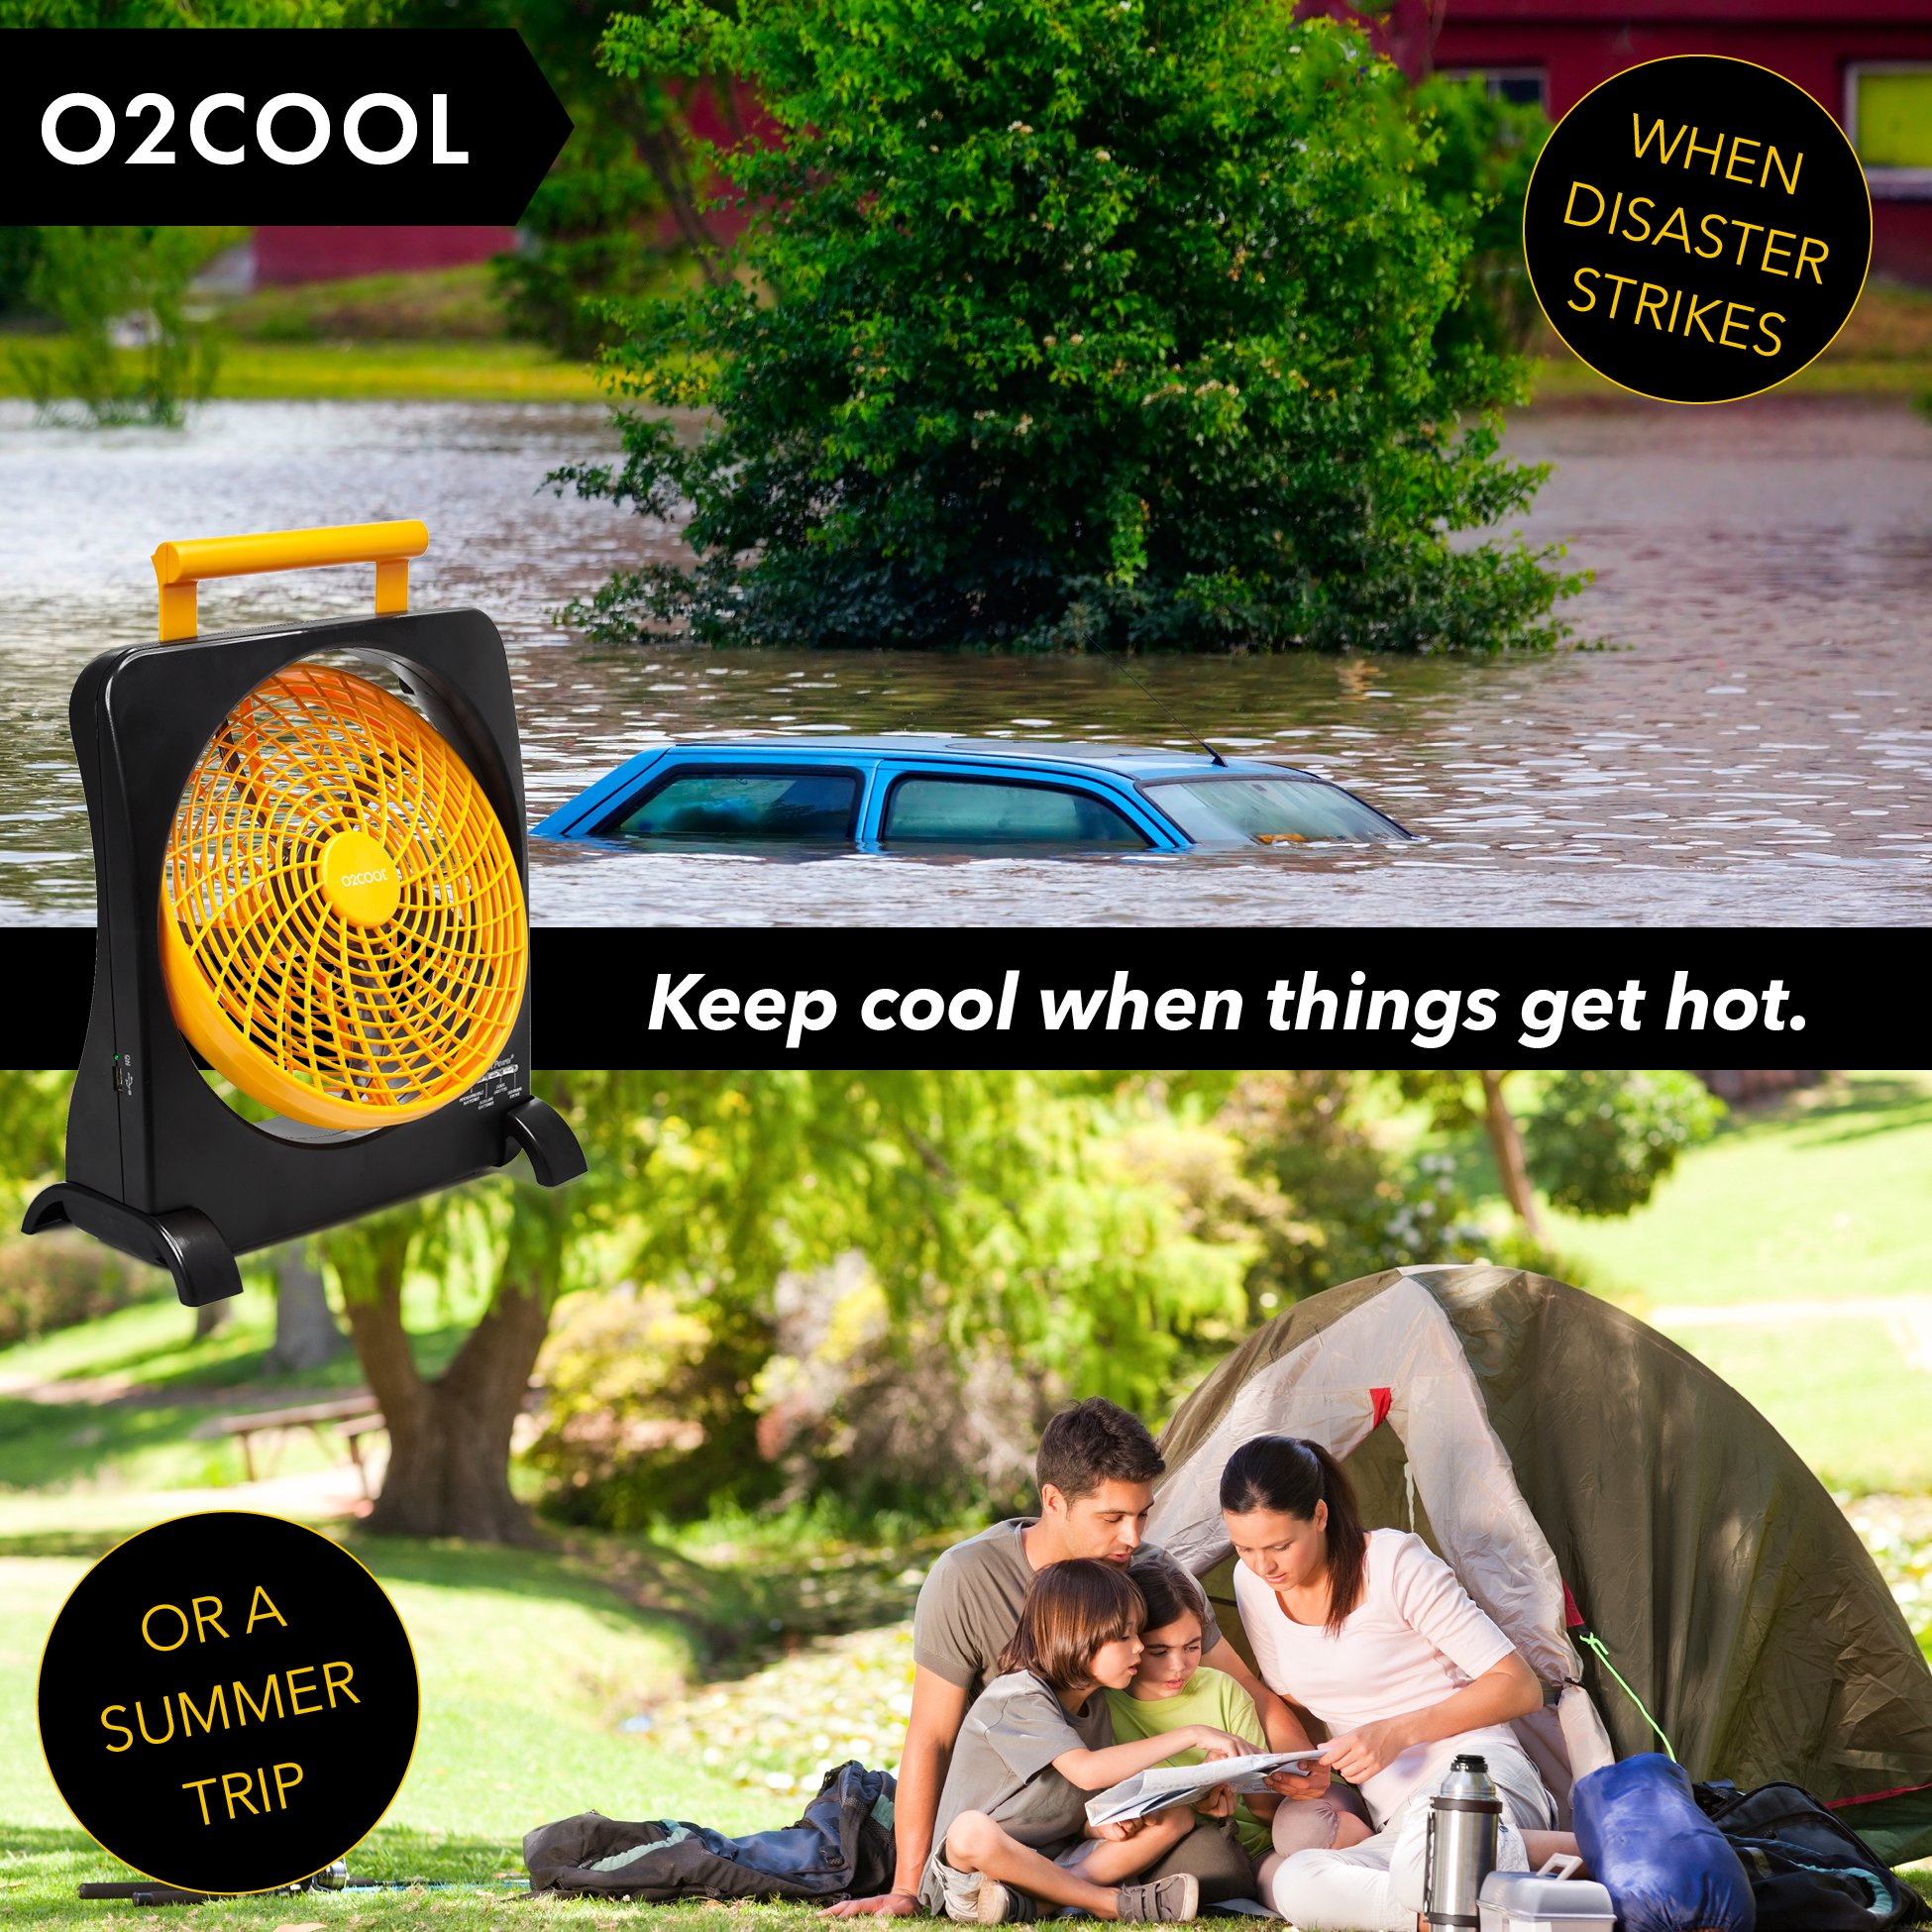 """O2COOL 10"""" Battery Operated Fan - Portable Smart Power Fan with AC Adapter & USB Charging Port for Emergencies, Camping & Travel Use (Orange) by O2COOL (Image #5)"""